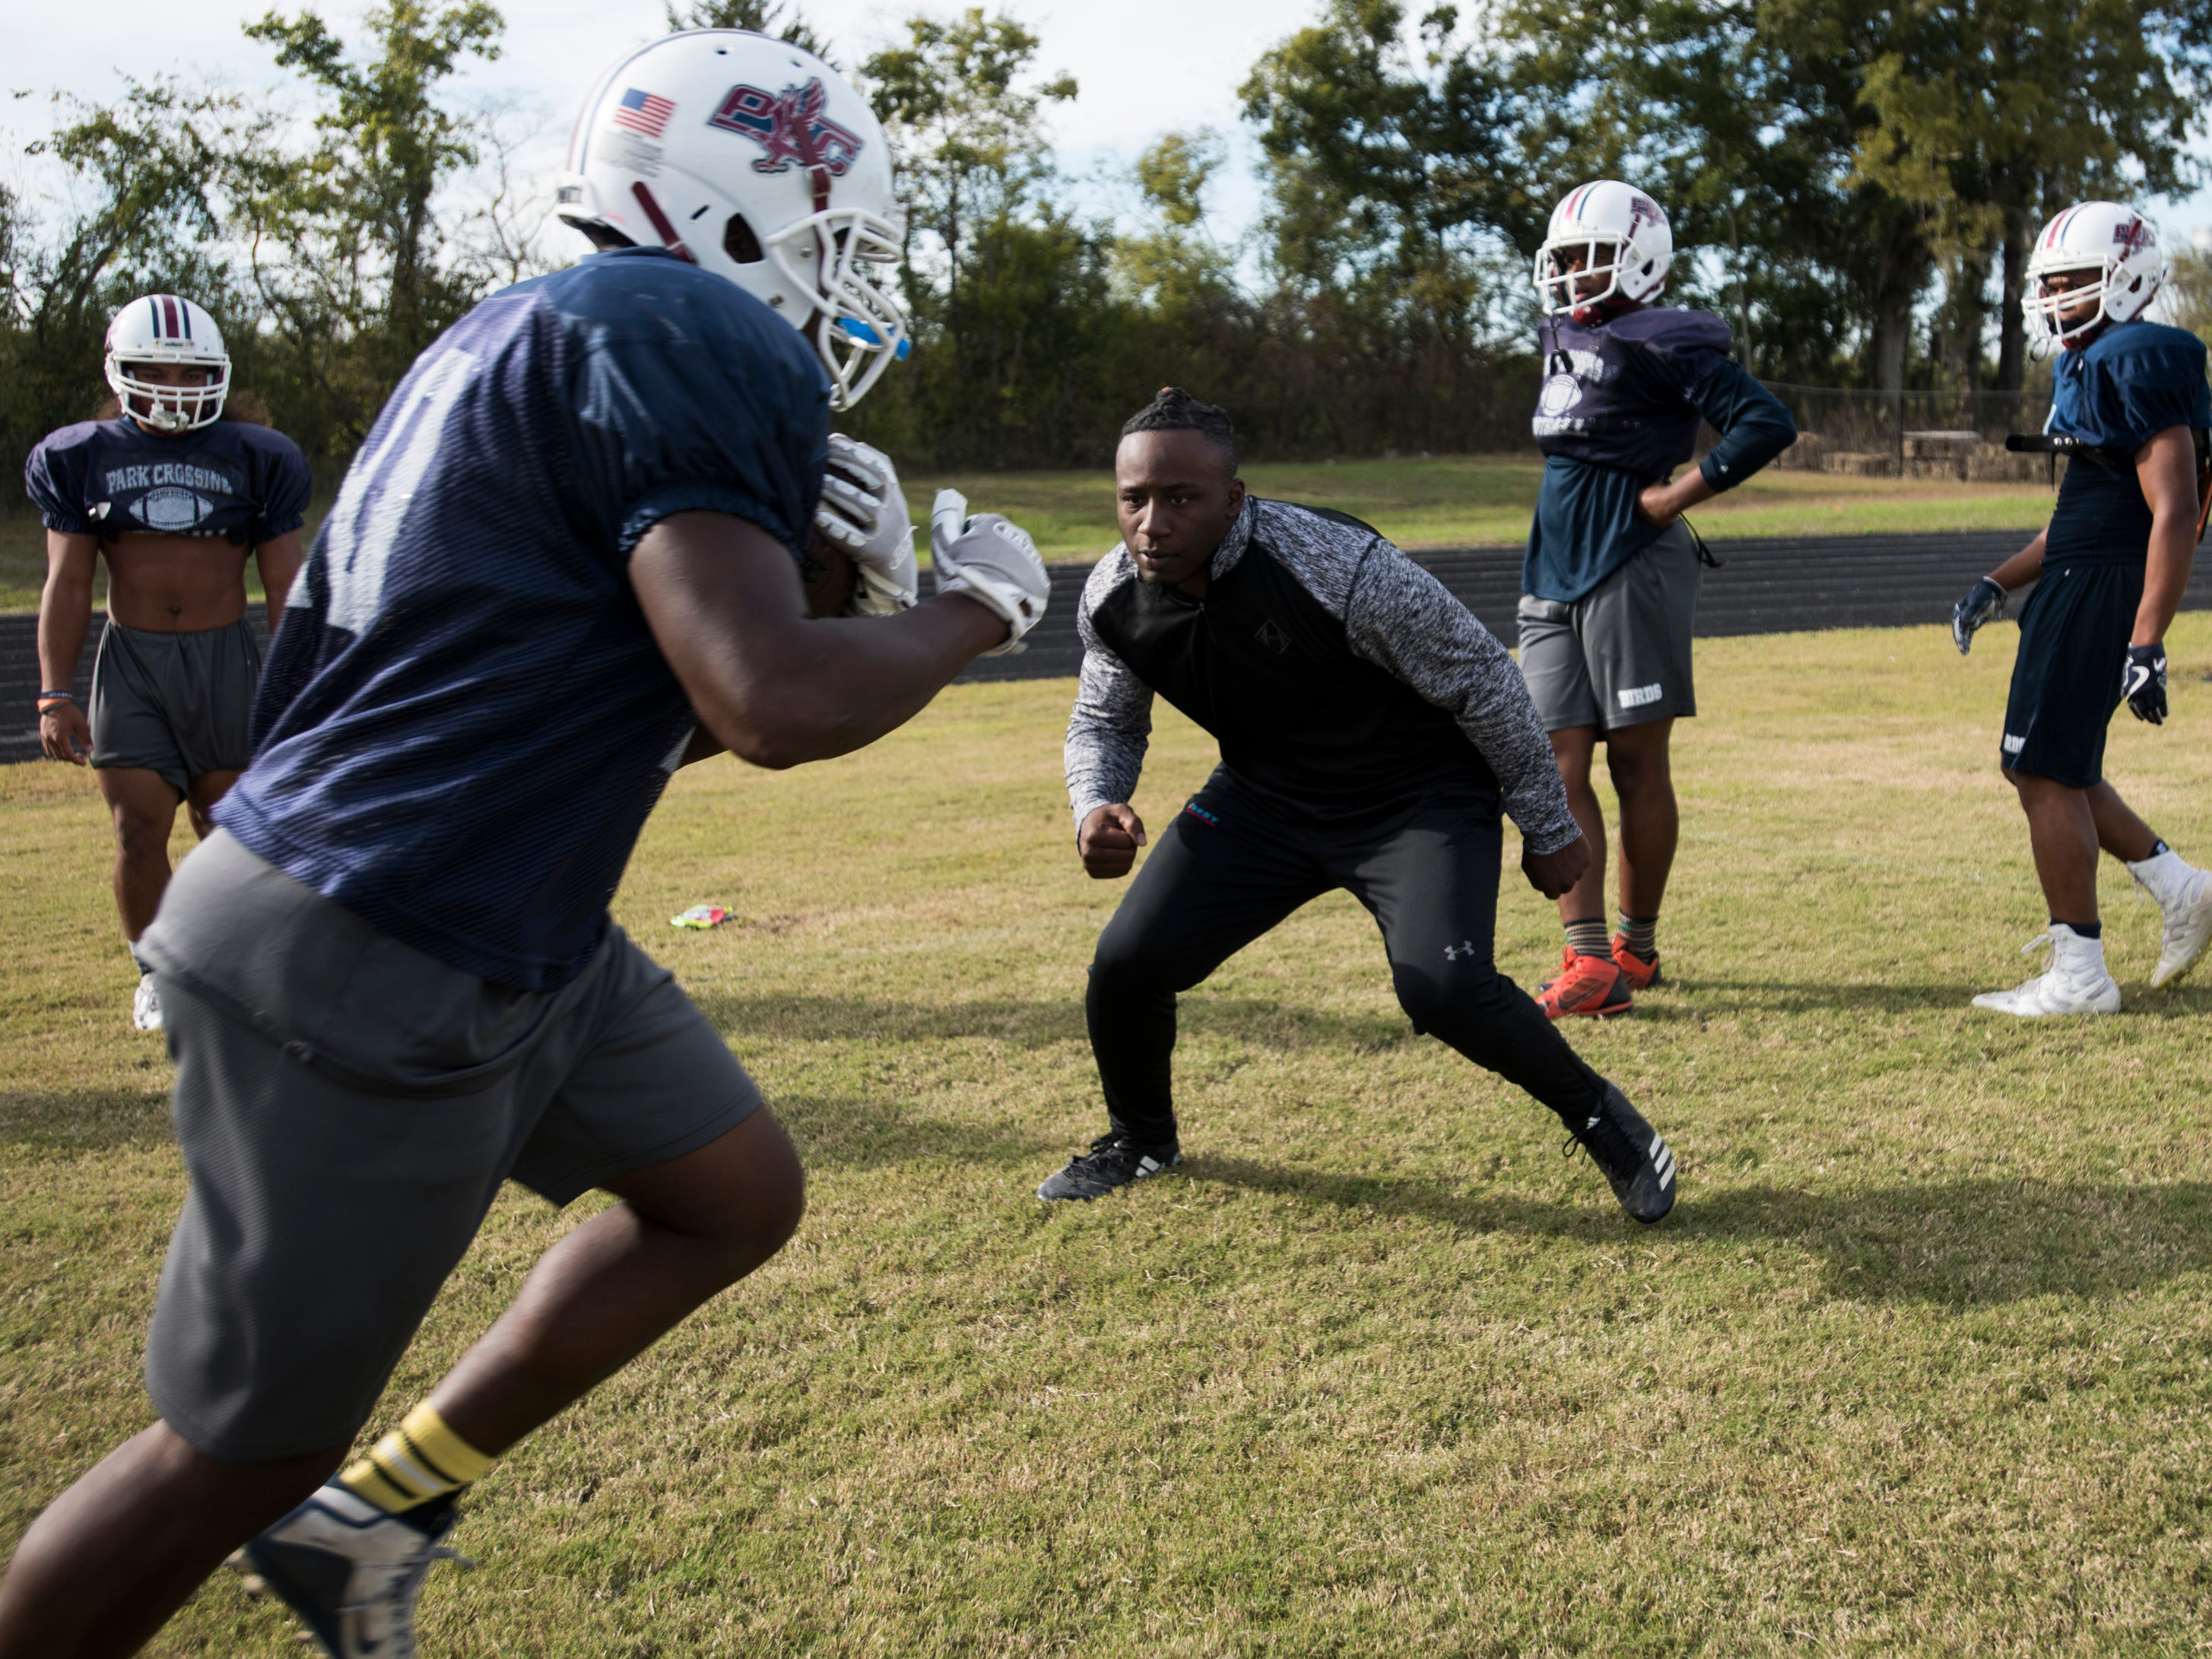 Kamryn Pettway, former Auburn running back, runs drills as he coaches at Park Crossing High School in Montgomery, Ala., on Wednesday, Oct. 24, 2018.